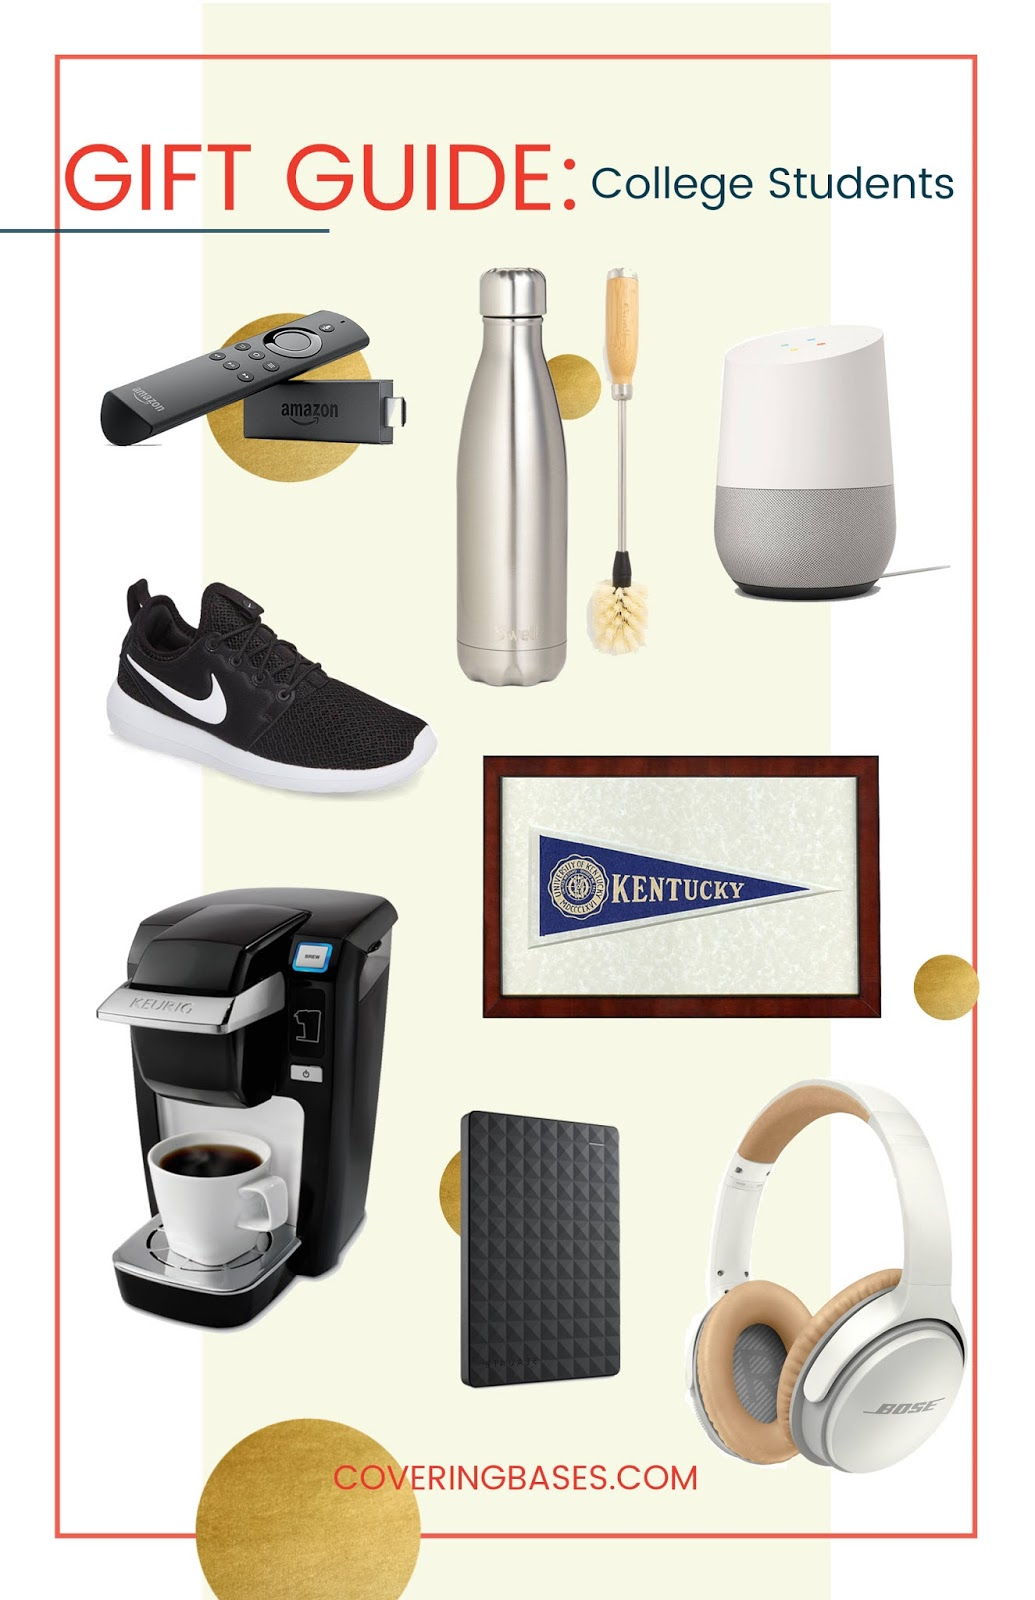 Gift Guide College Students